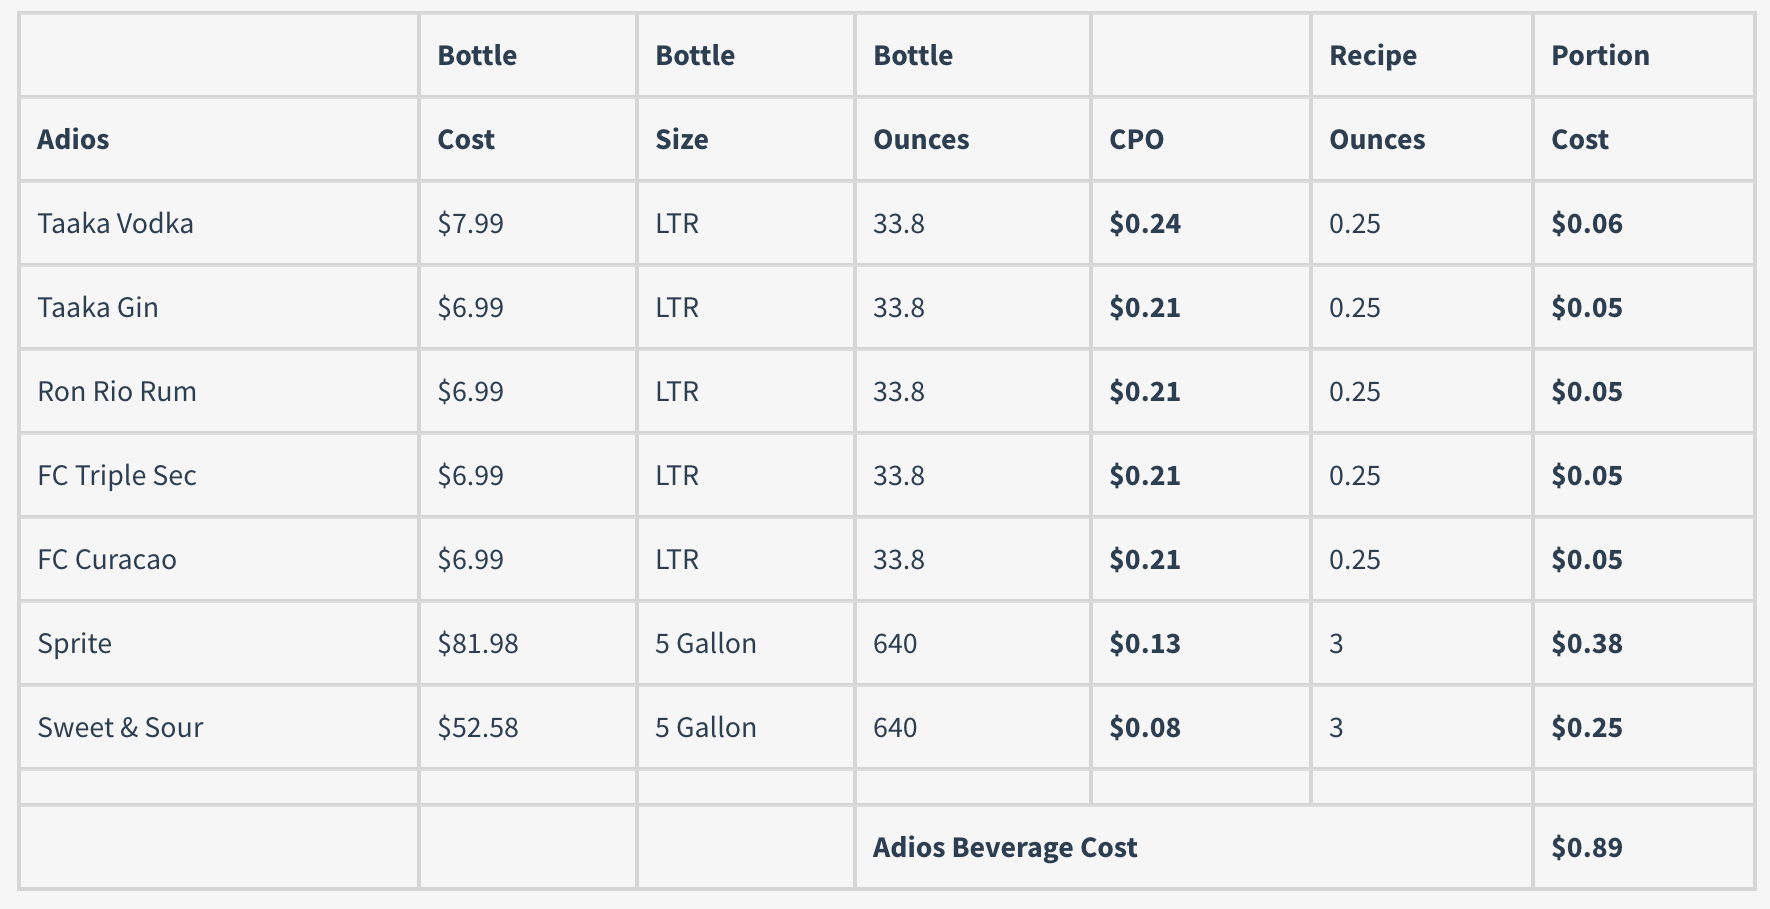 Standardizing cocktail recipes is the foundation for bar math. Calculating the total beverage cost per cocktail is paramount to profitability. The total beverage cost for an Adios is $0.89. Multi liquor drinks like adios, long islands and hurricanes are considered premium cocktails. Premium drinks that cost $0.89 to create and sell for $7.00 are profitable cocktails.